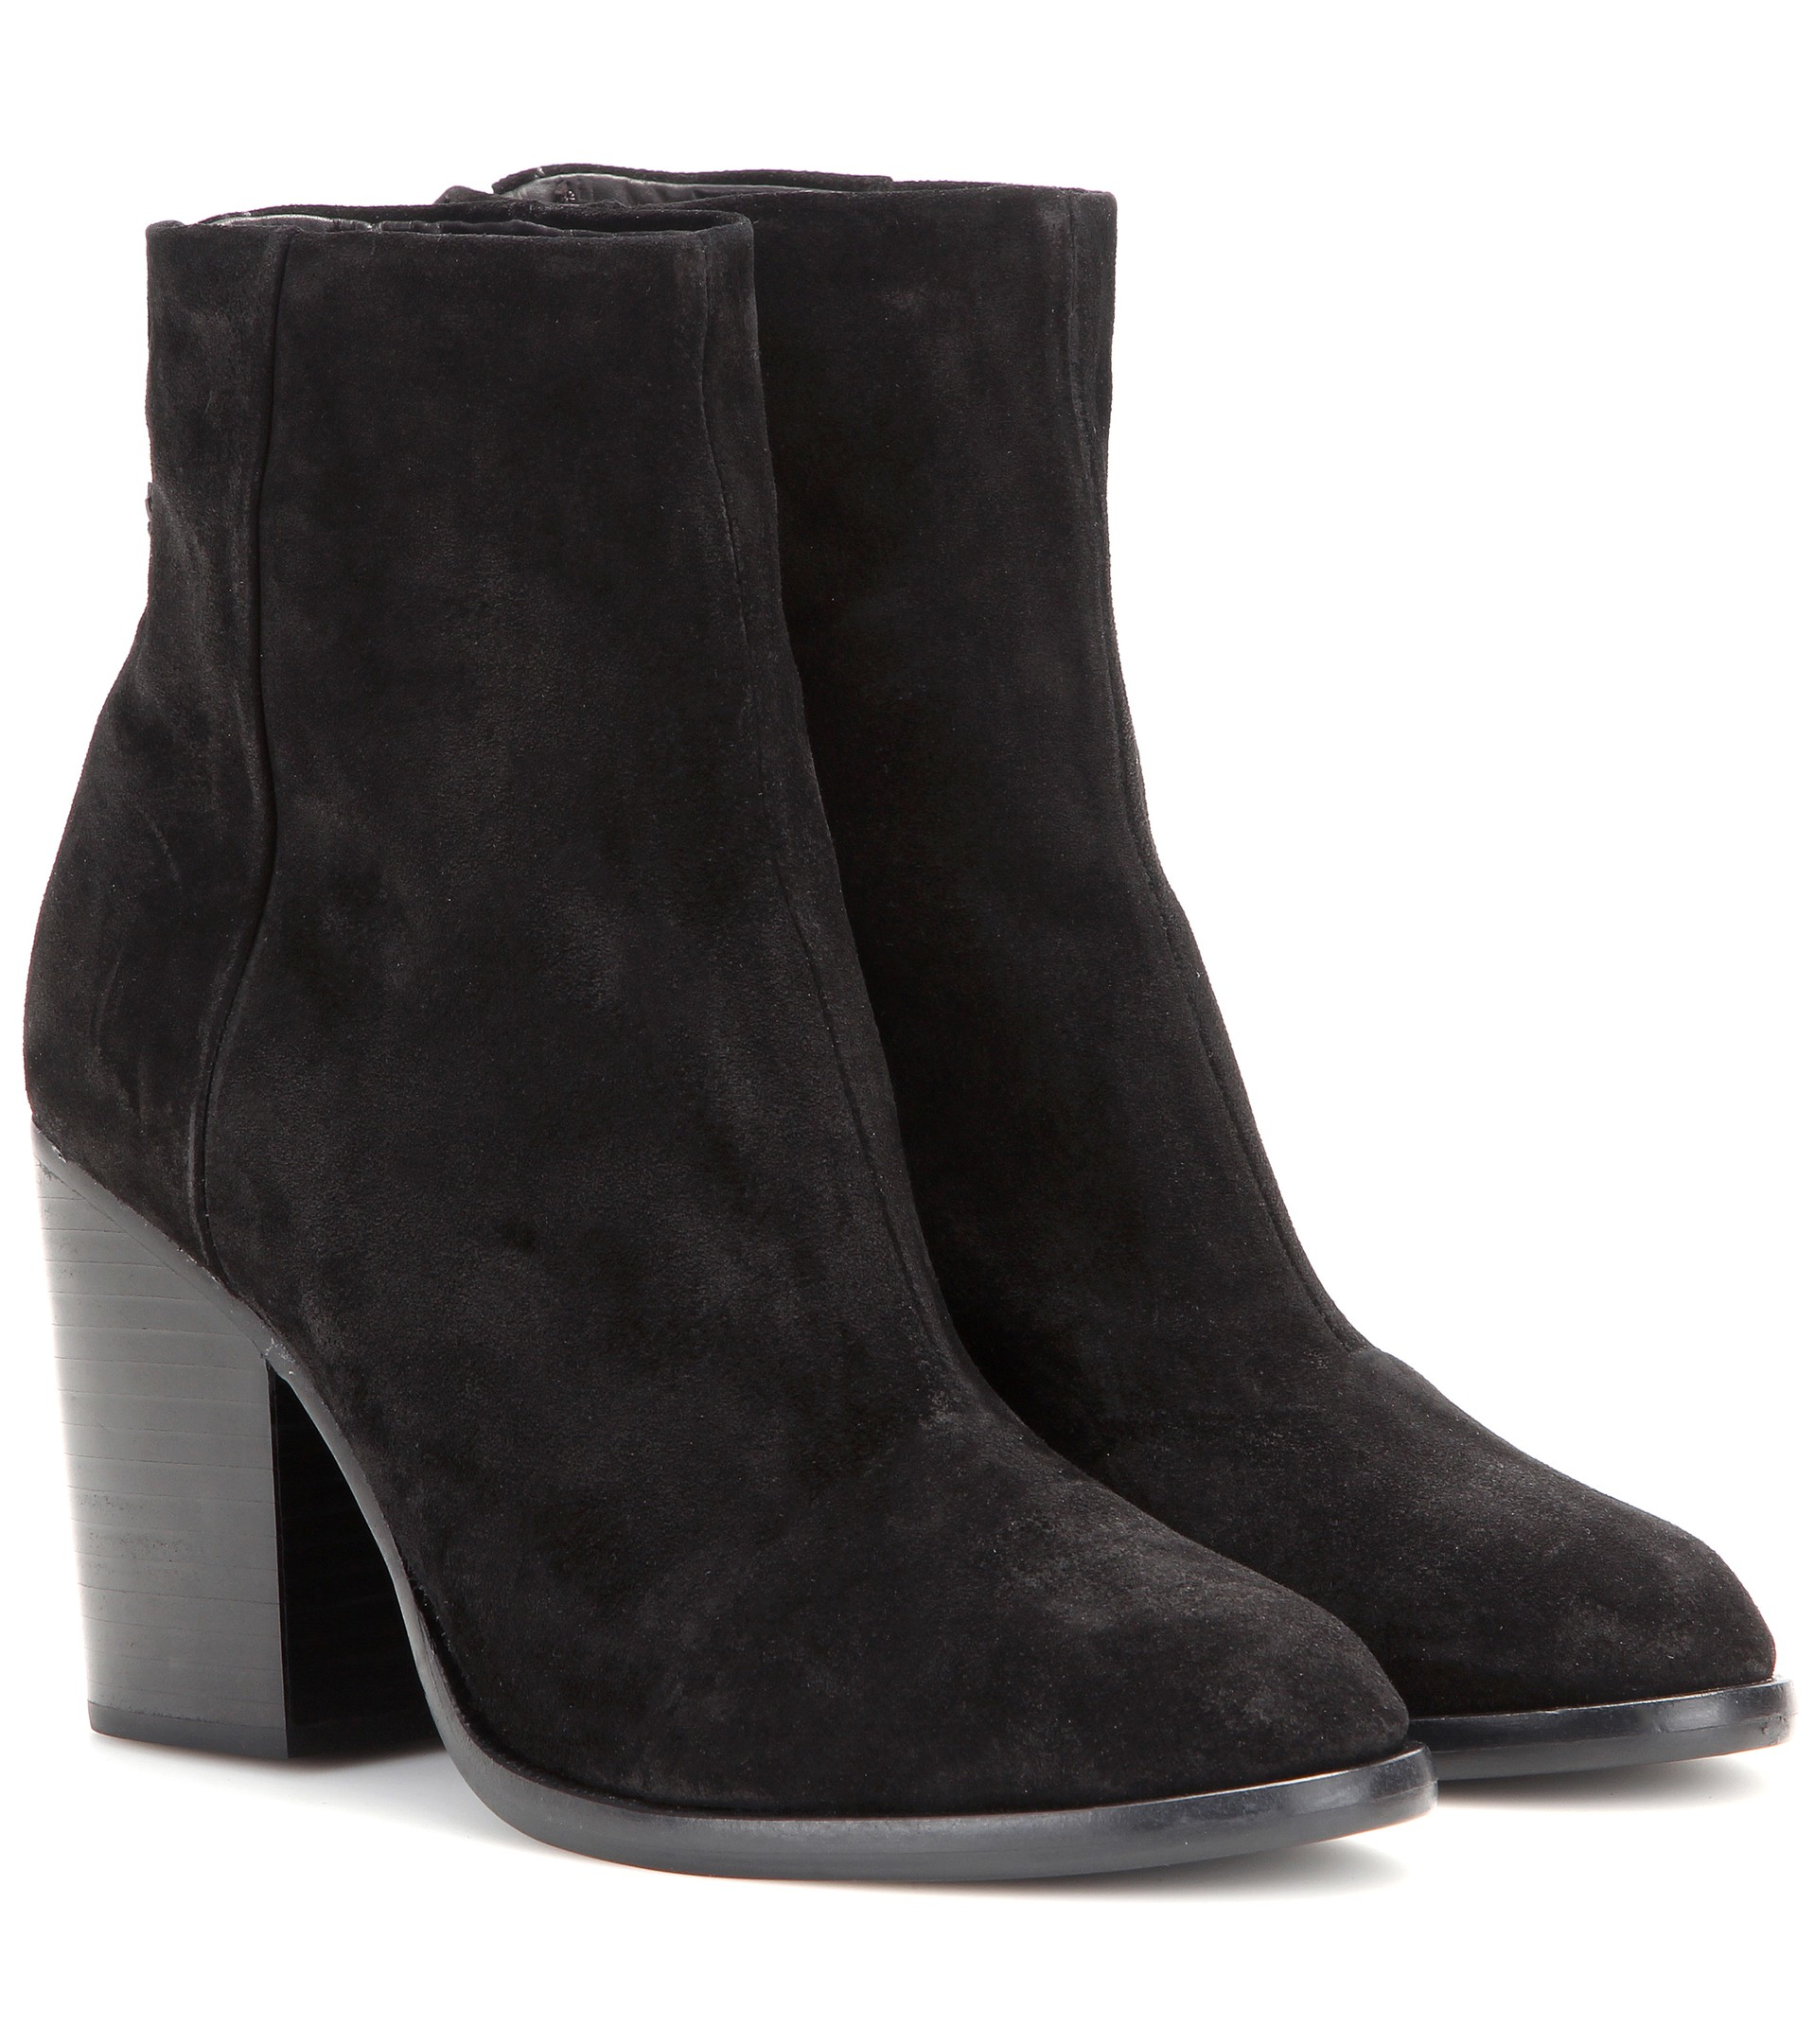 Rag & Bone Black Suede Ankle Boots